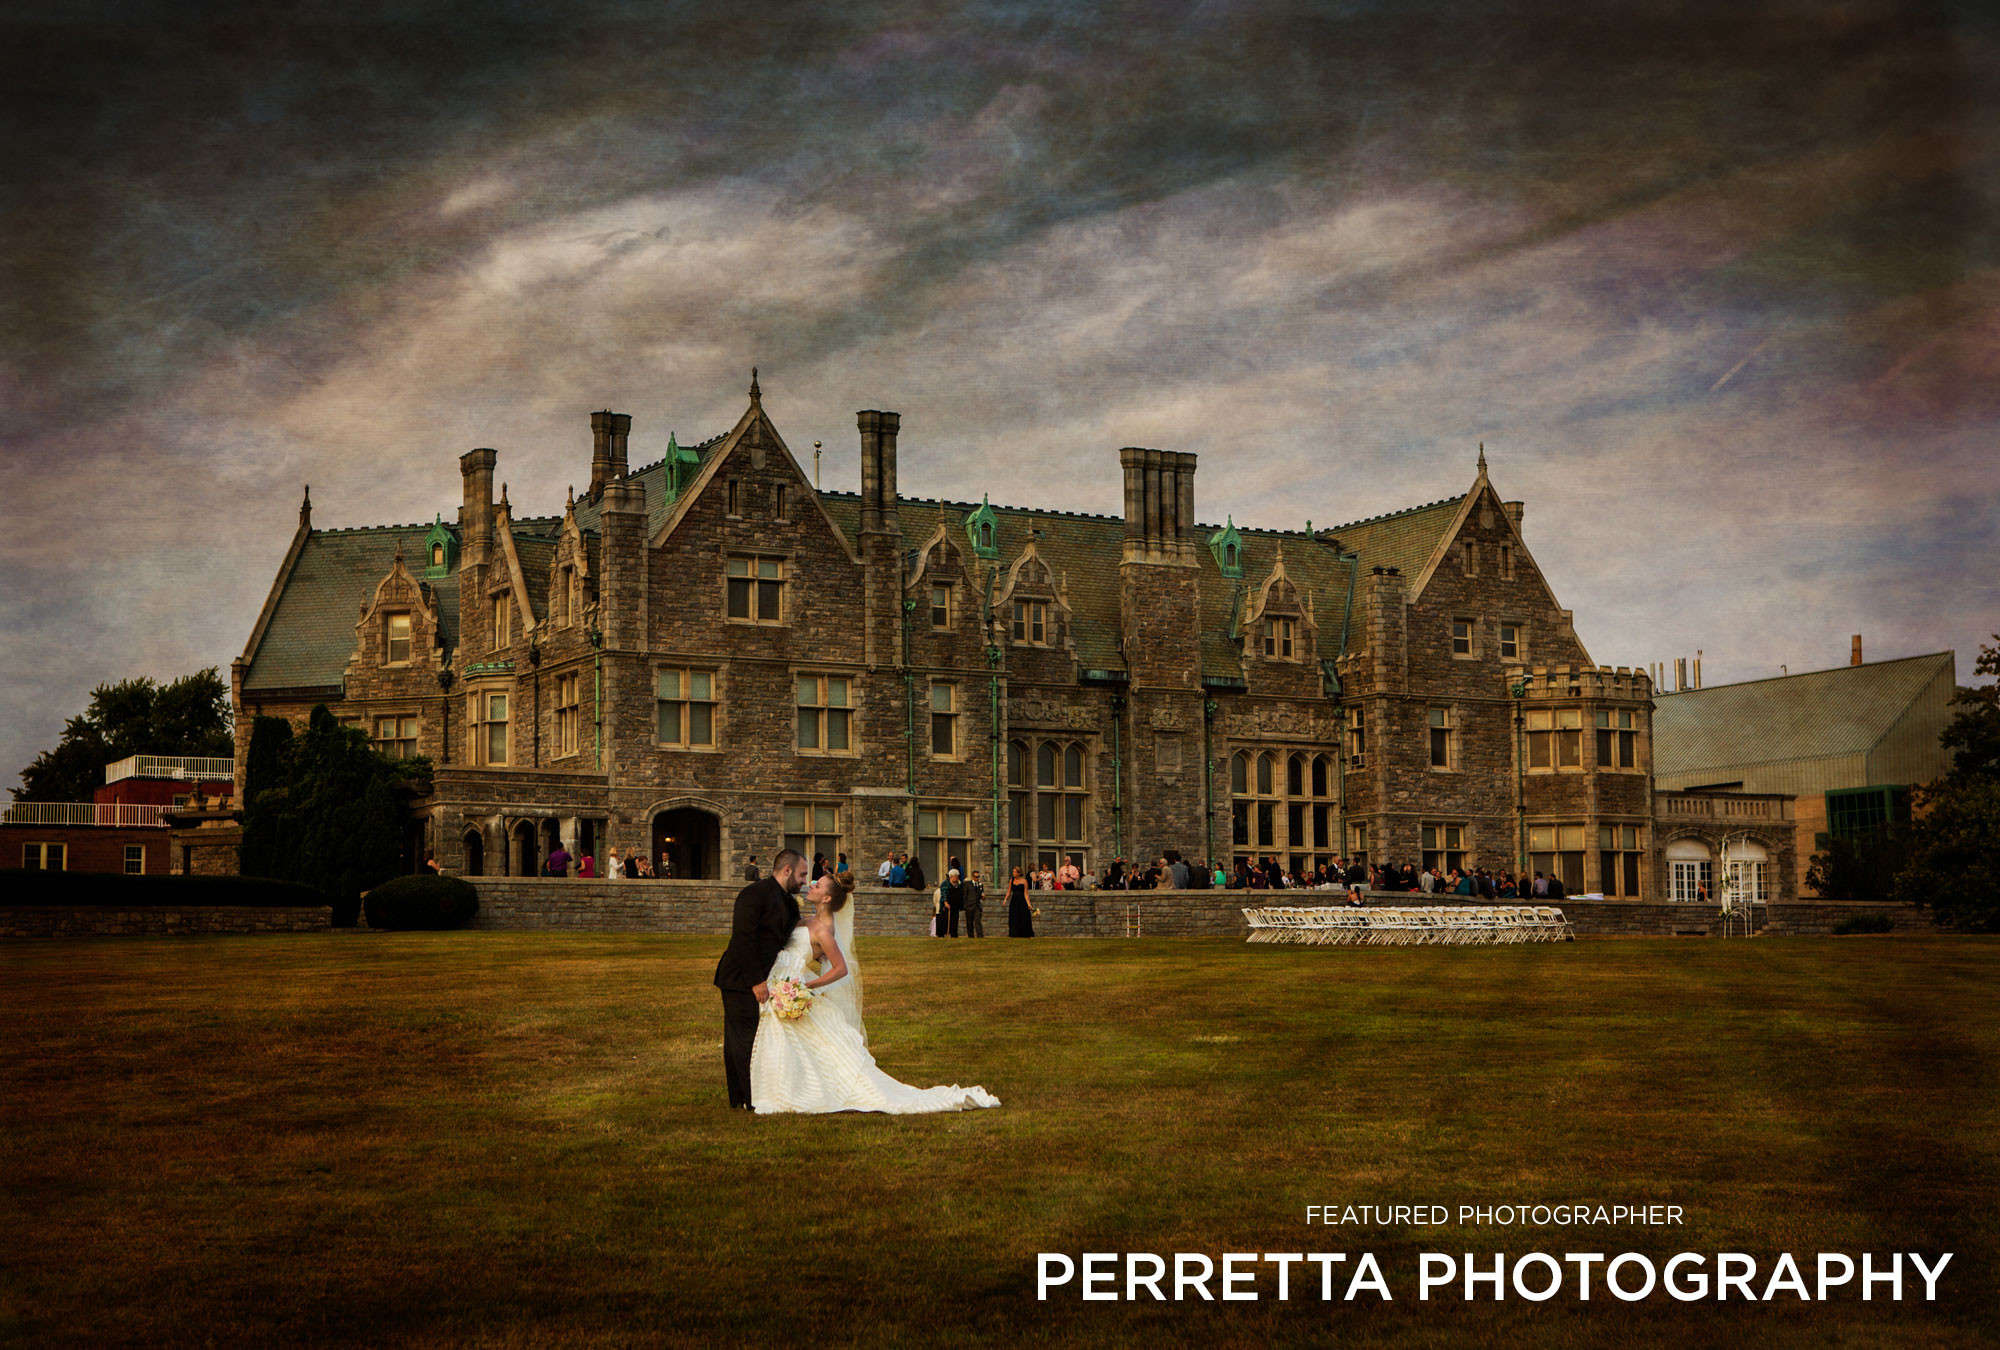 Perretta Photography - Featured Photographer